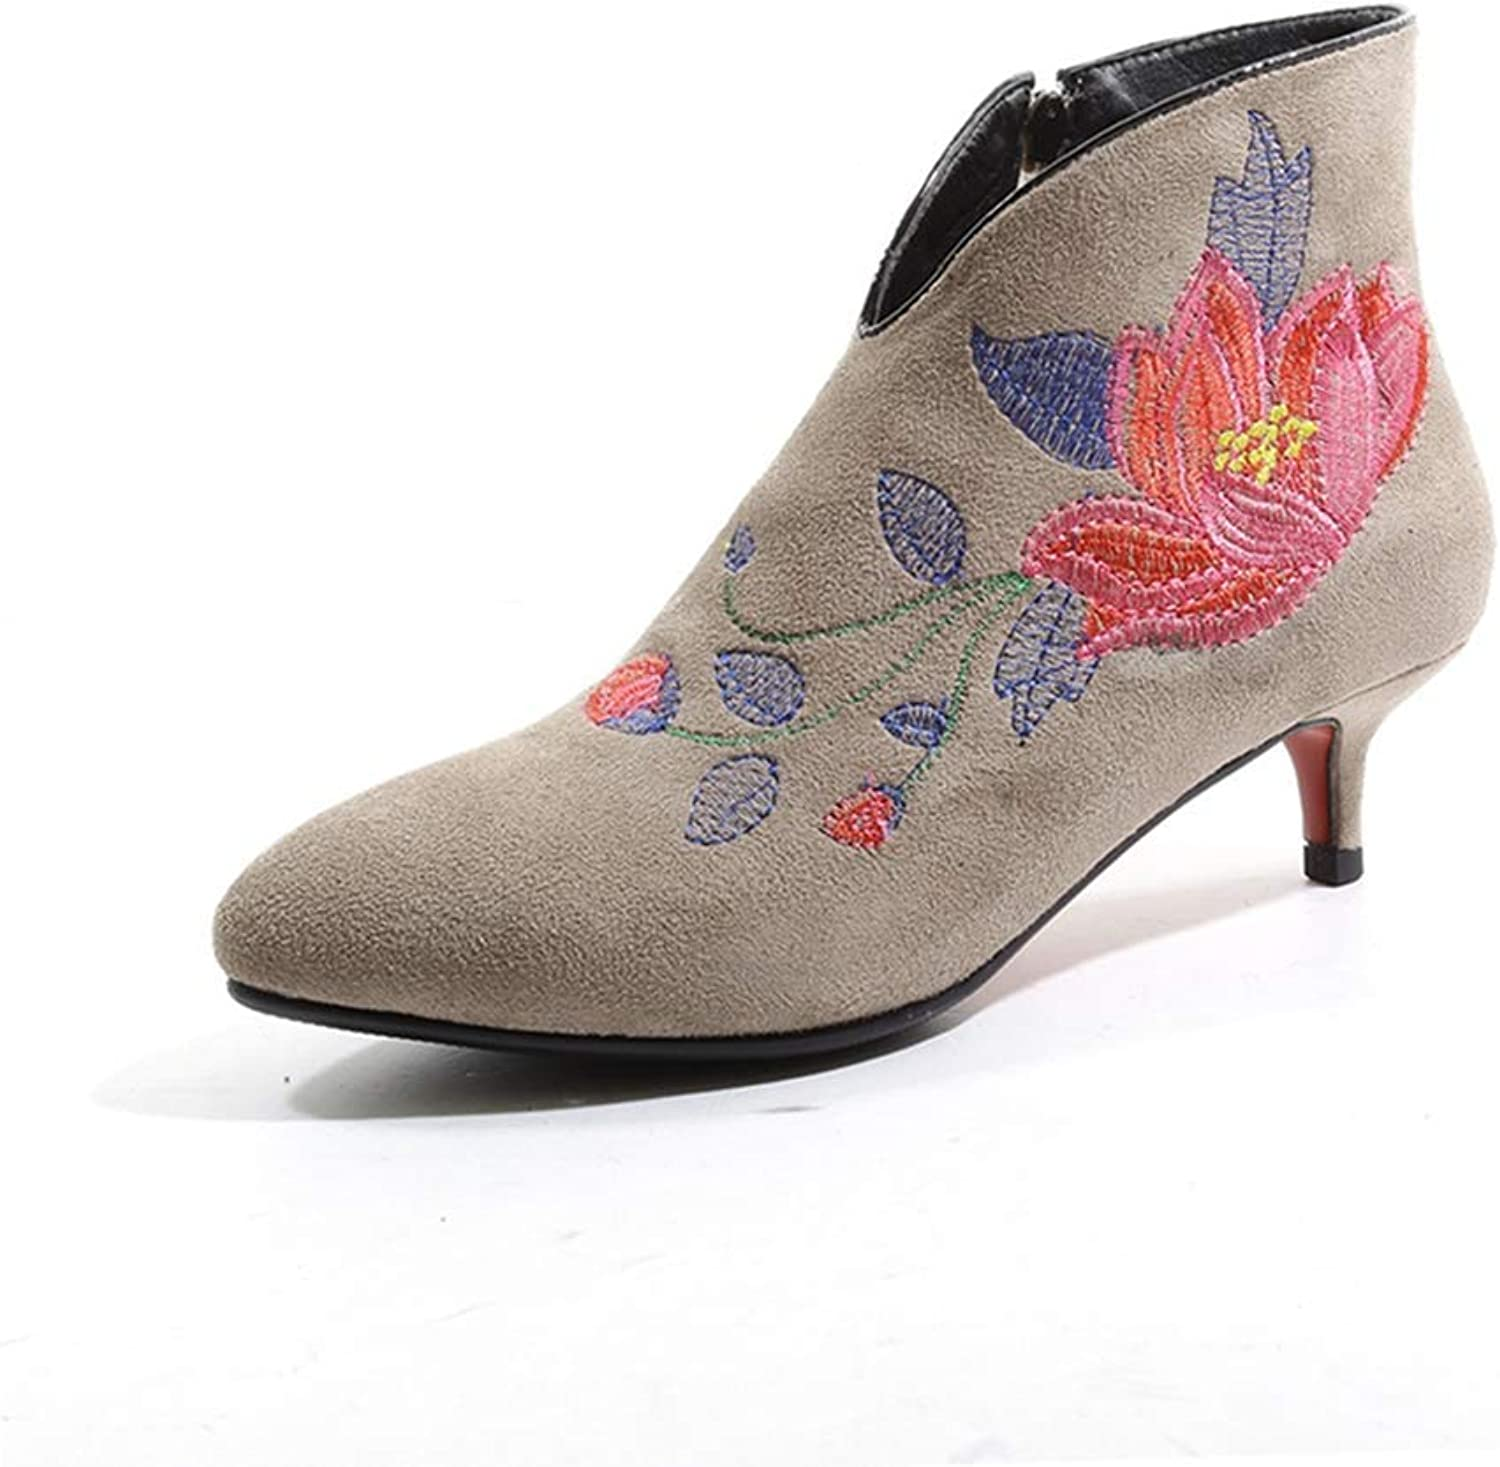 KEREE Women's Retro Embroidered Ankle Boots Flowers Pointed Toe Stiletto Low Heel Zipper Dress Short Booties